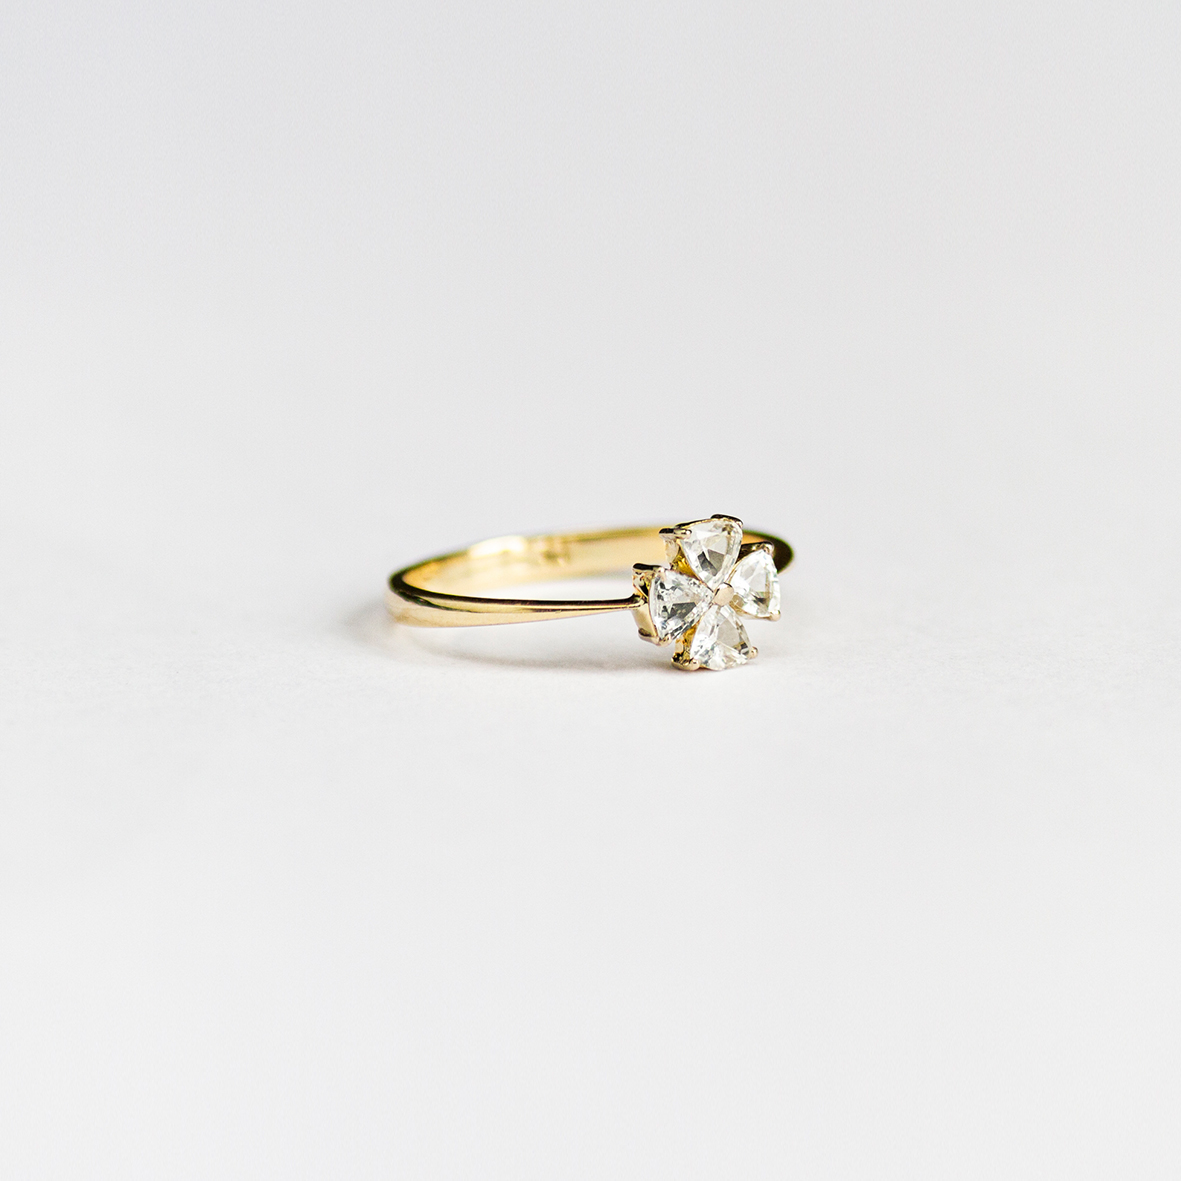 2. OONA_engagement_ficha2_sapphire clover ring